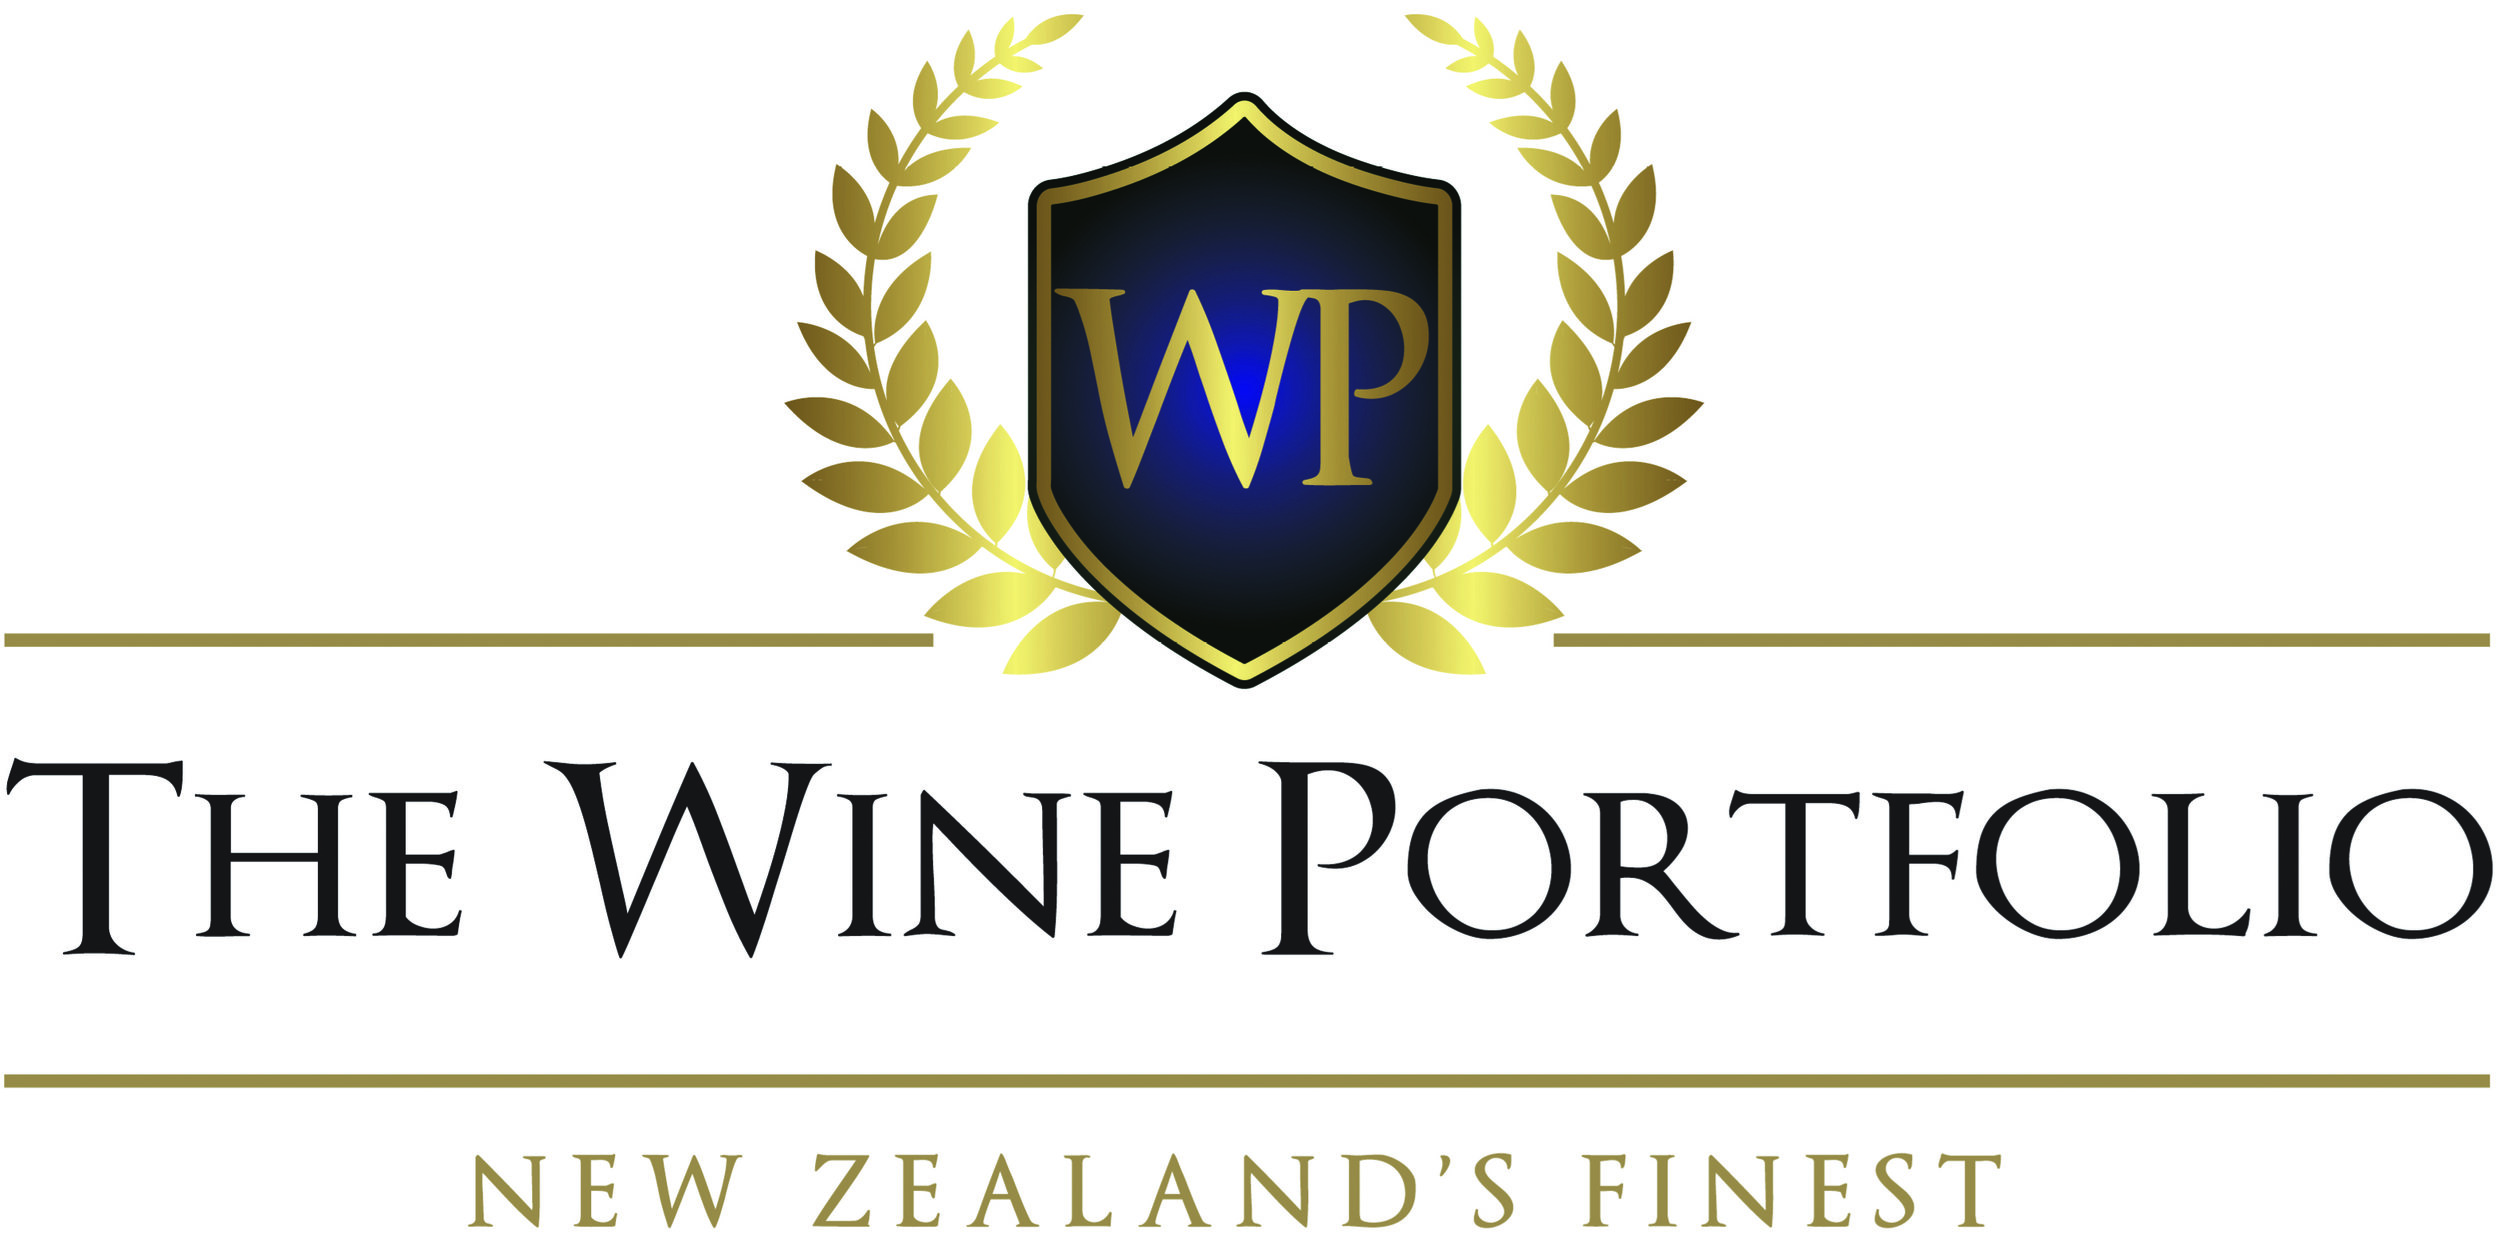 The_Wine_Portfolio_Logo_highq_OK_E.jpg